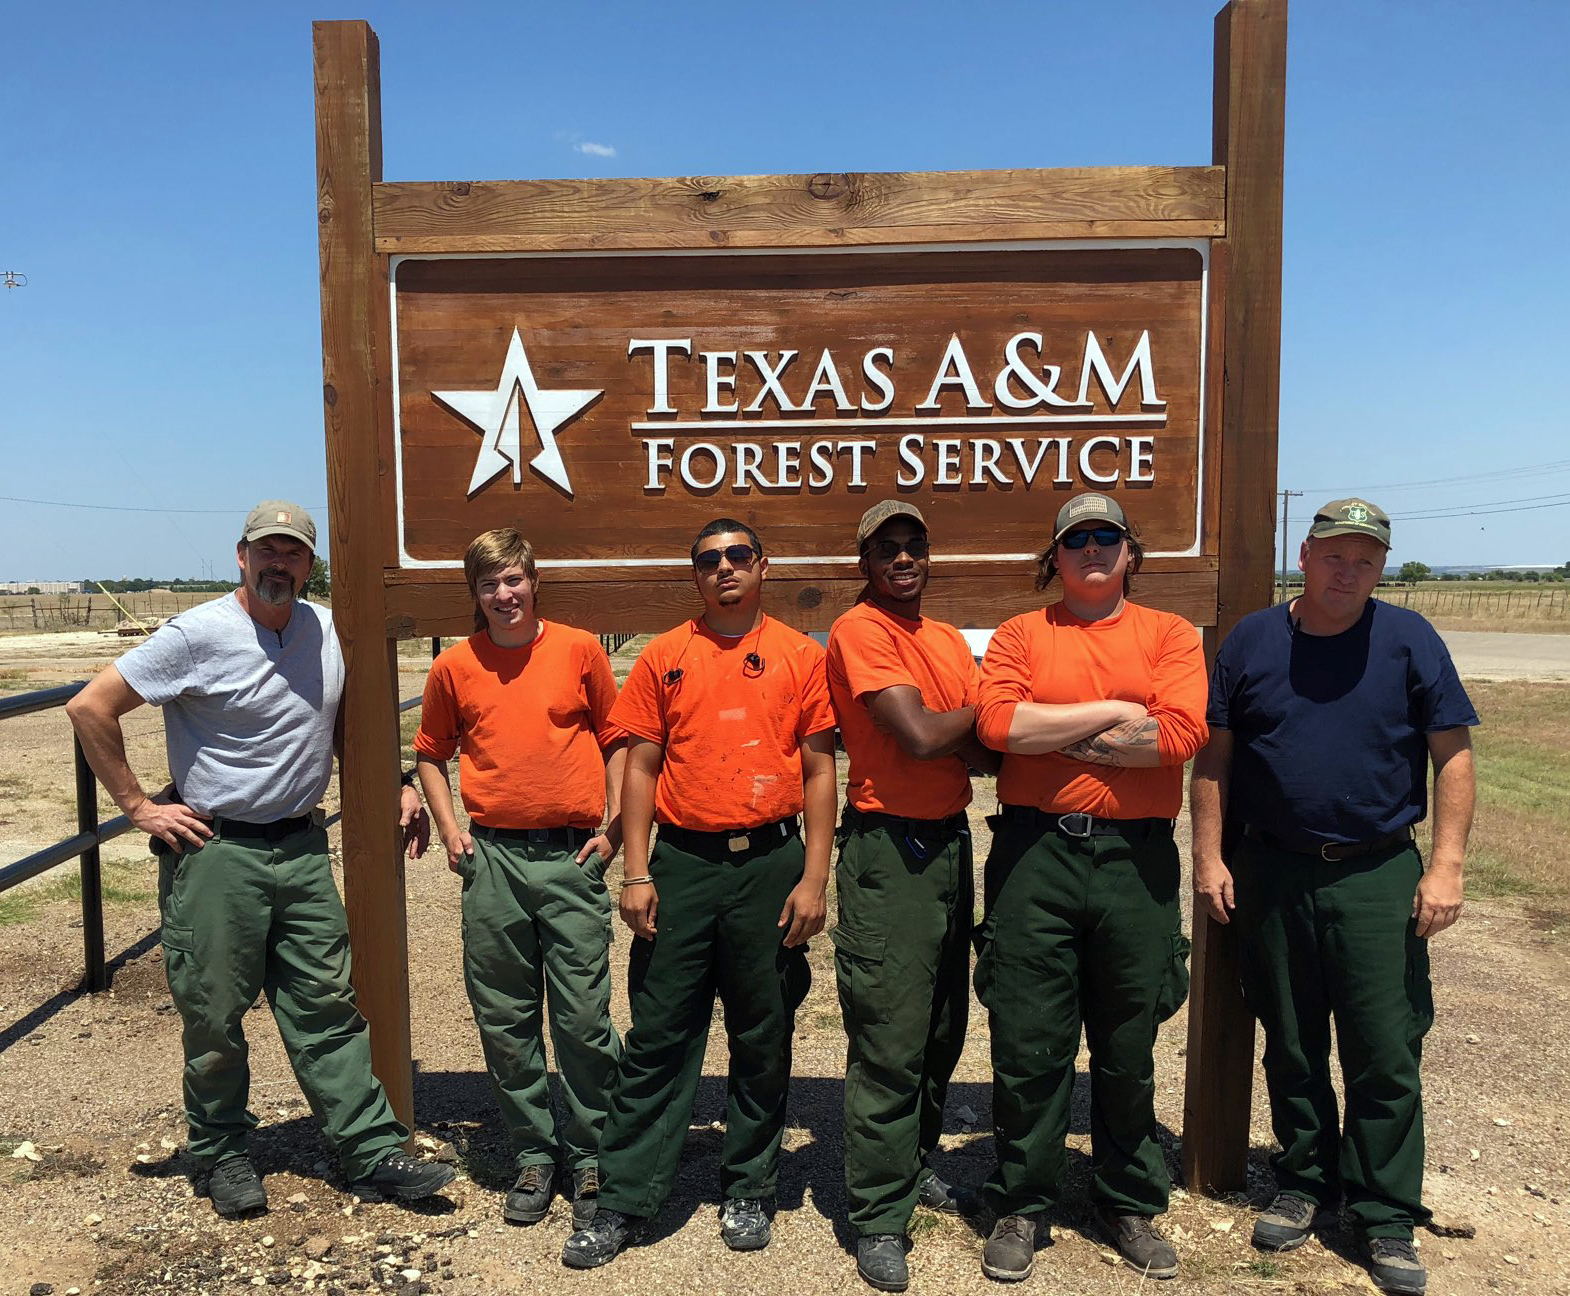 Photo: Group poses by Texas A&M Forest Service sign.